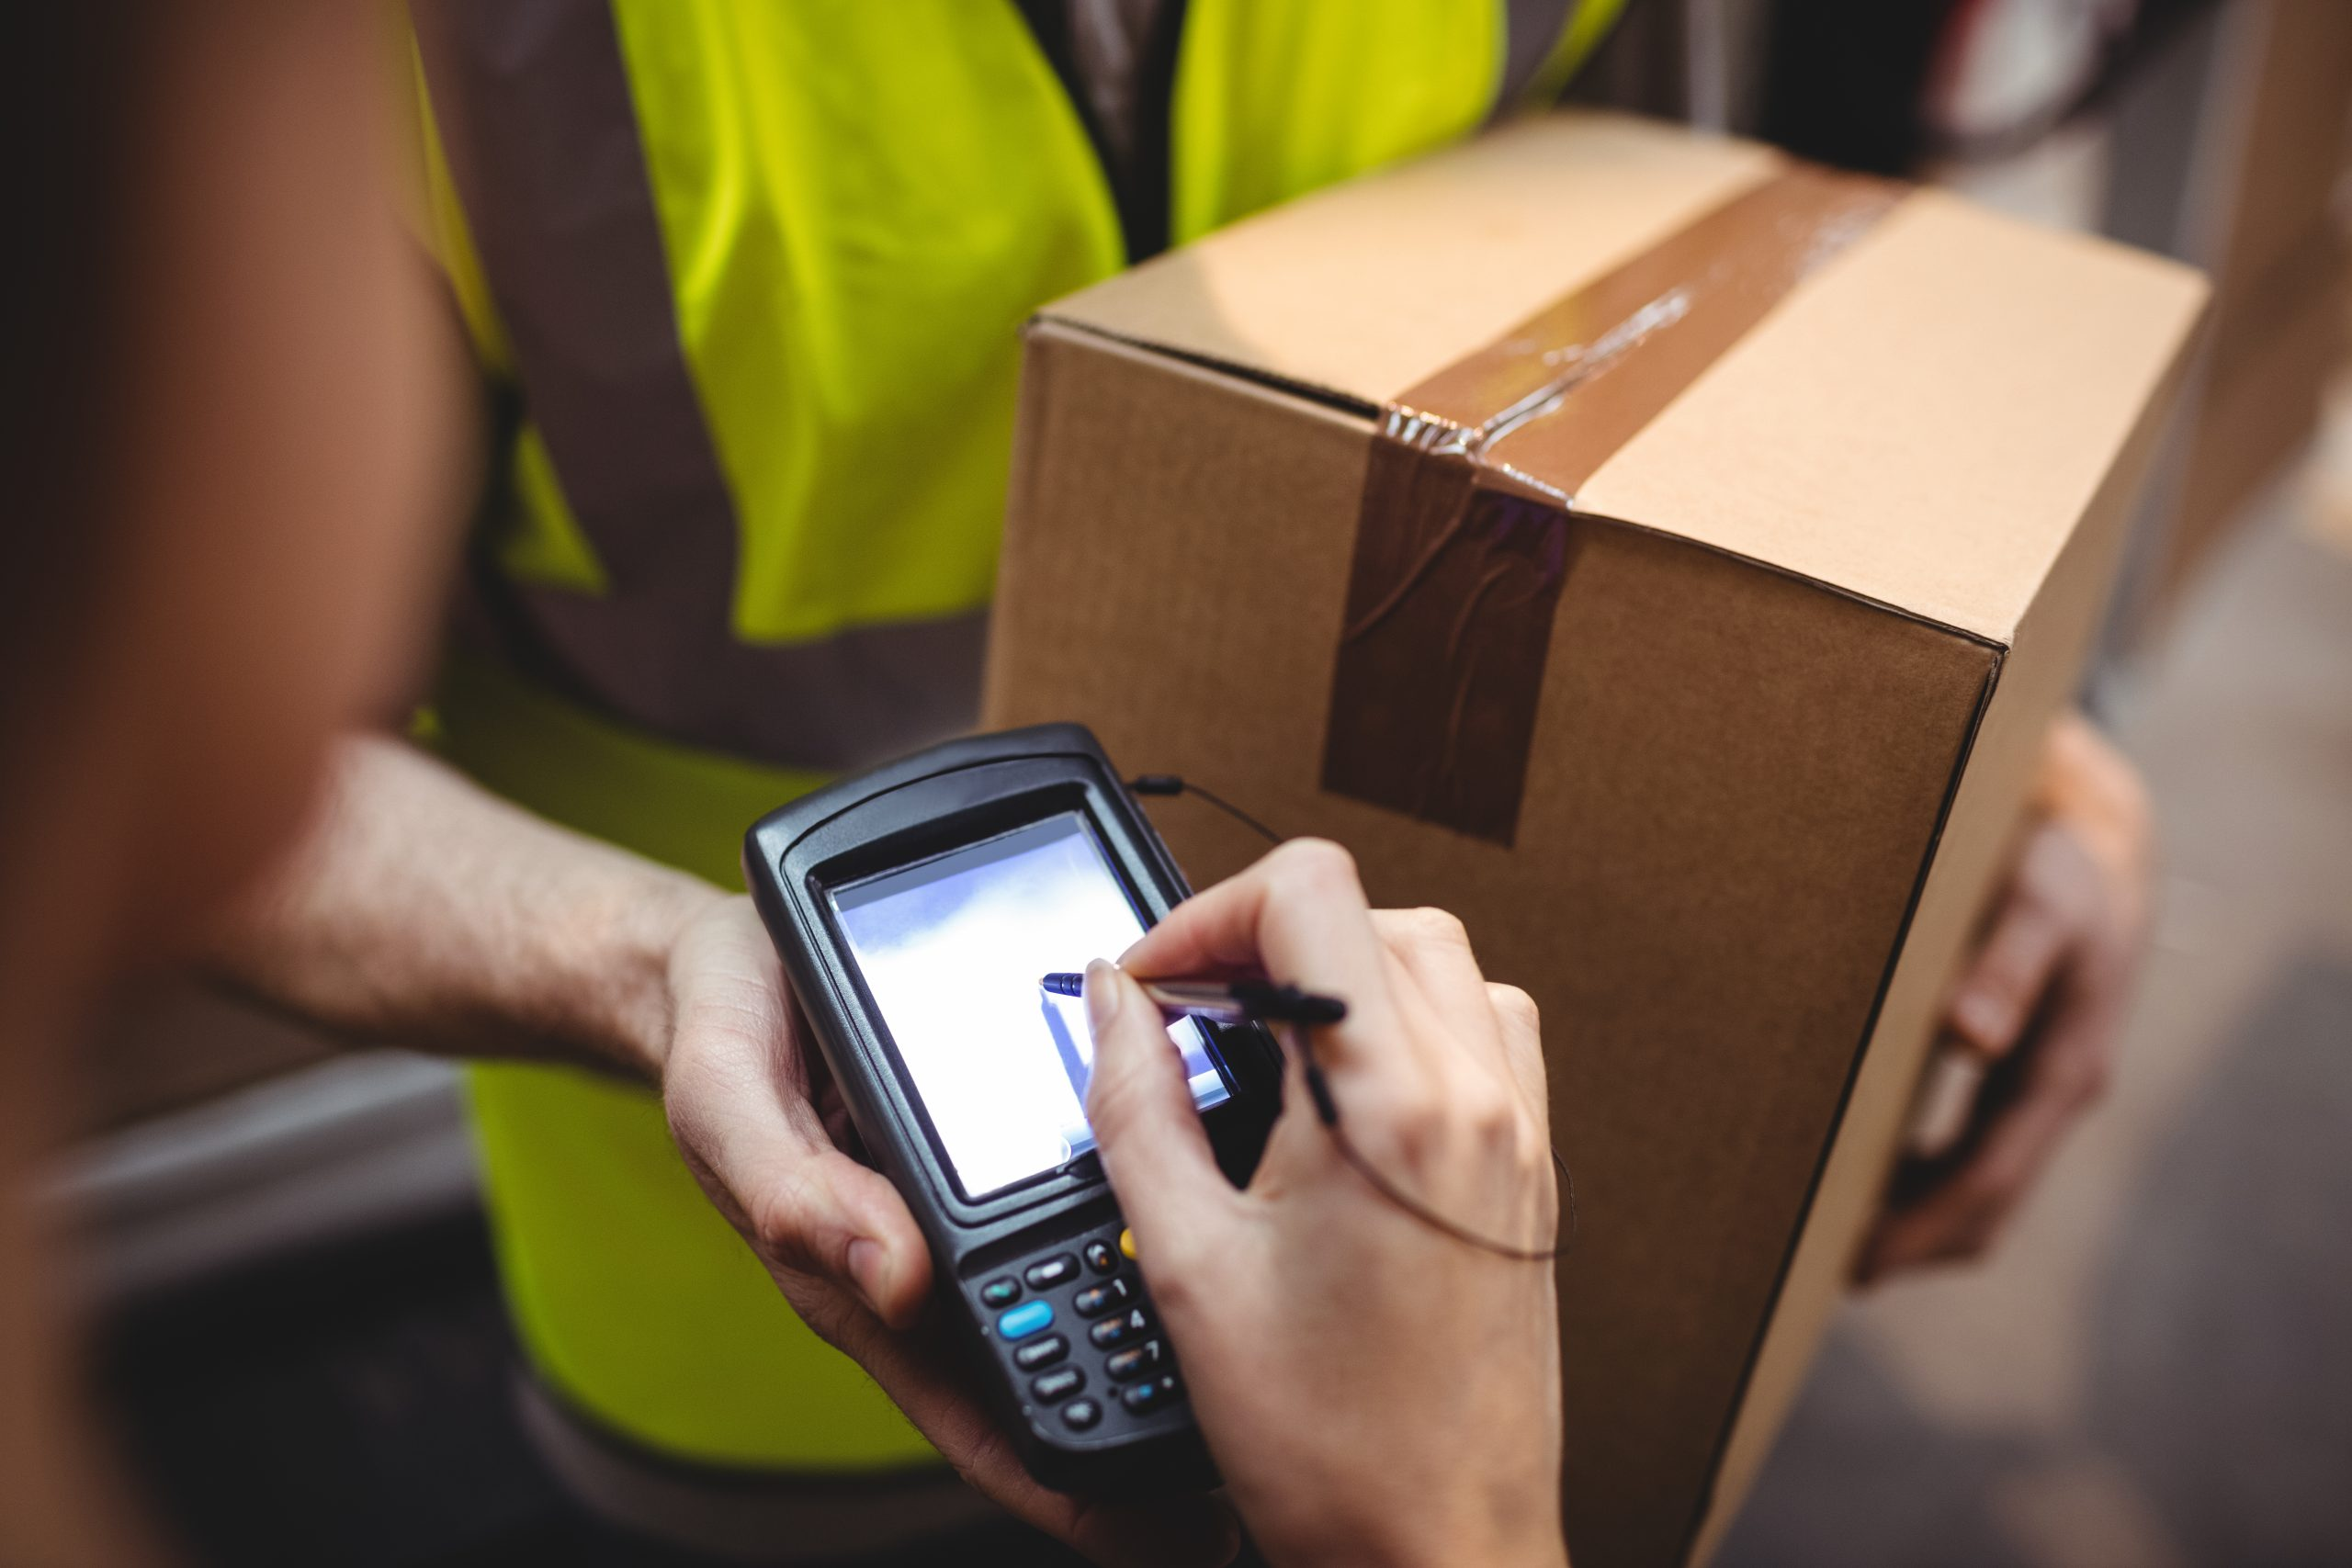 How has information technology transformed the package delivery business?